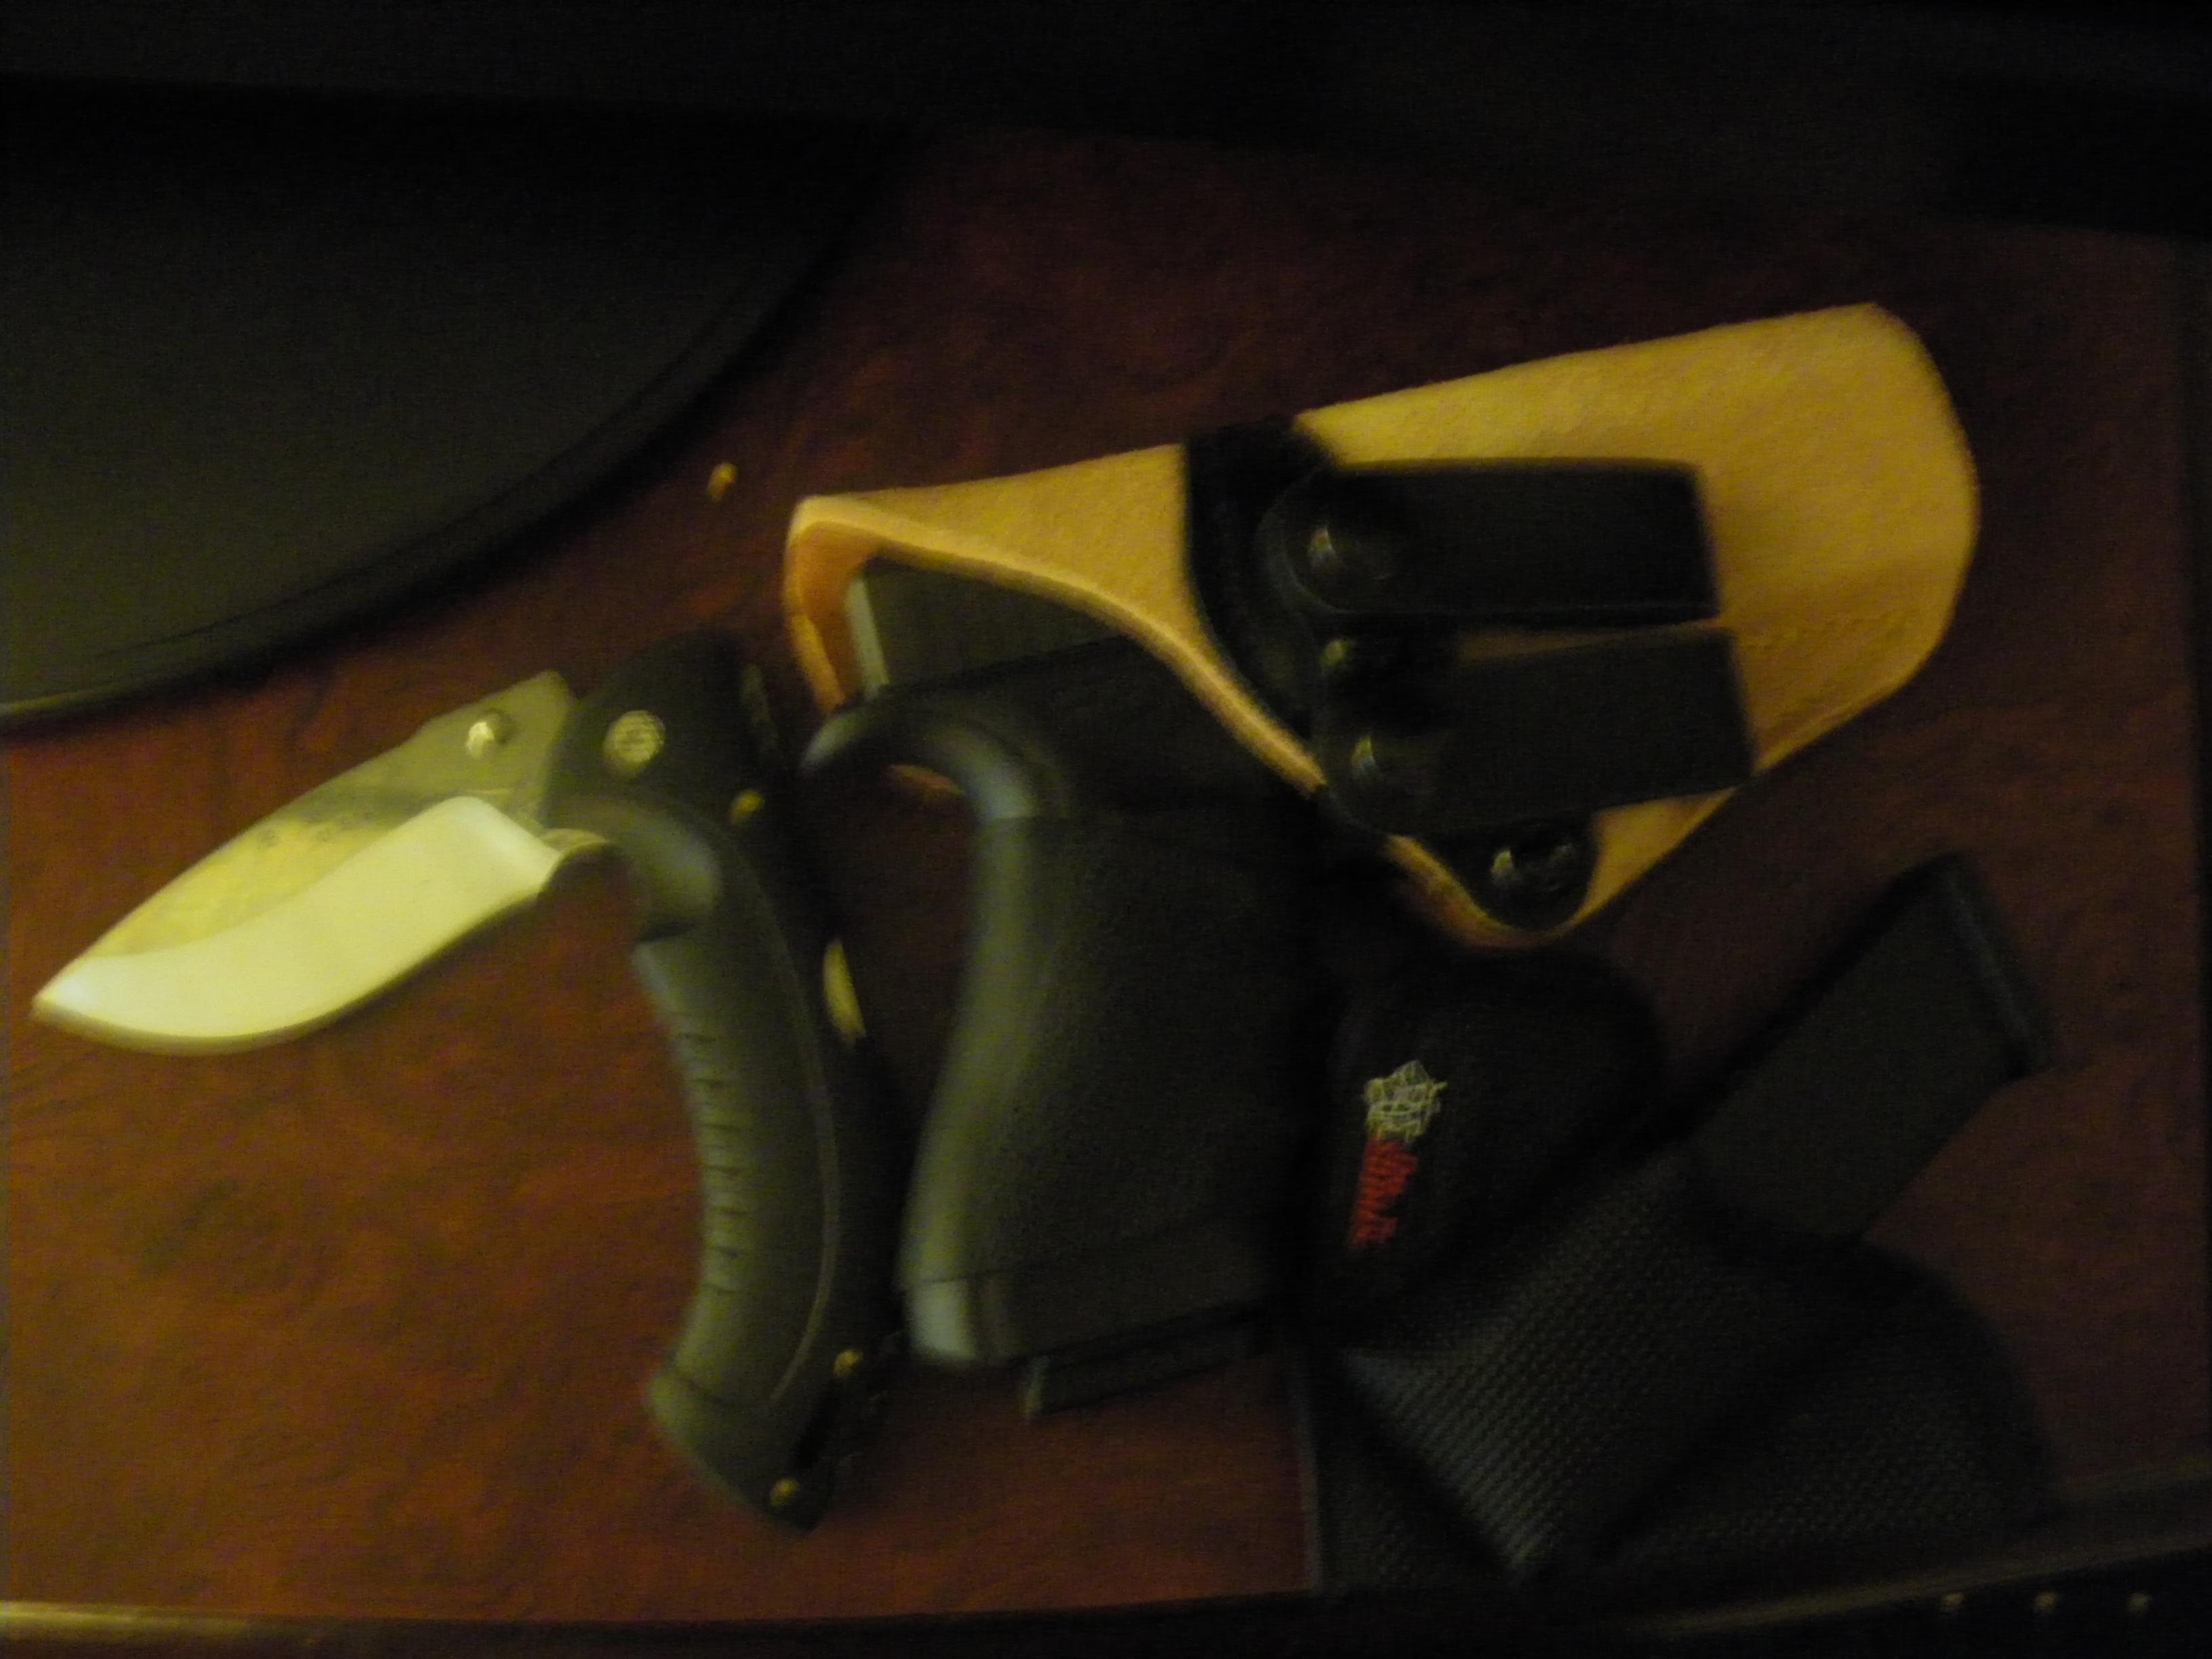 Need IWB holster recommendations for P-01 ( G19 size)-2012-06-28-18.09.41.jpg